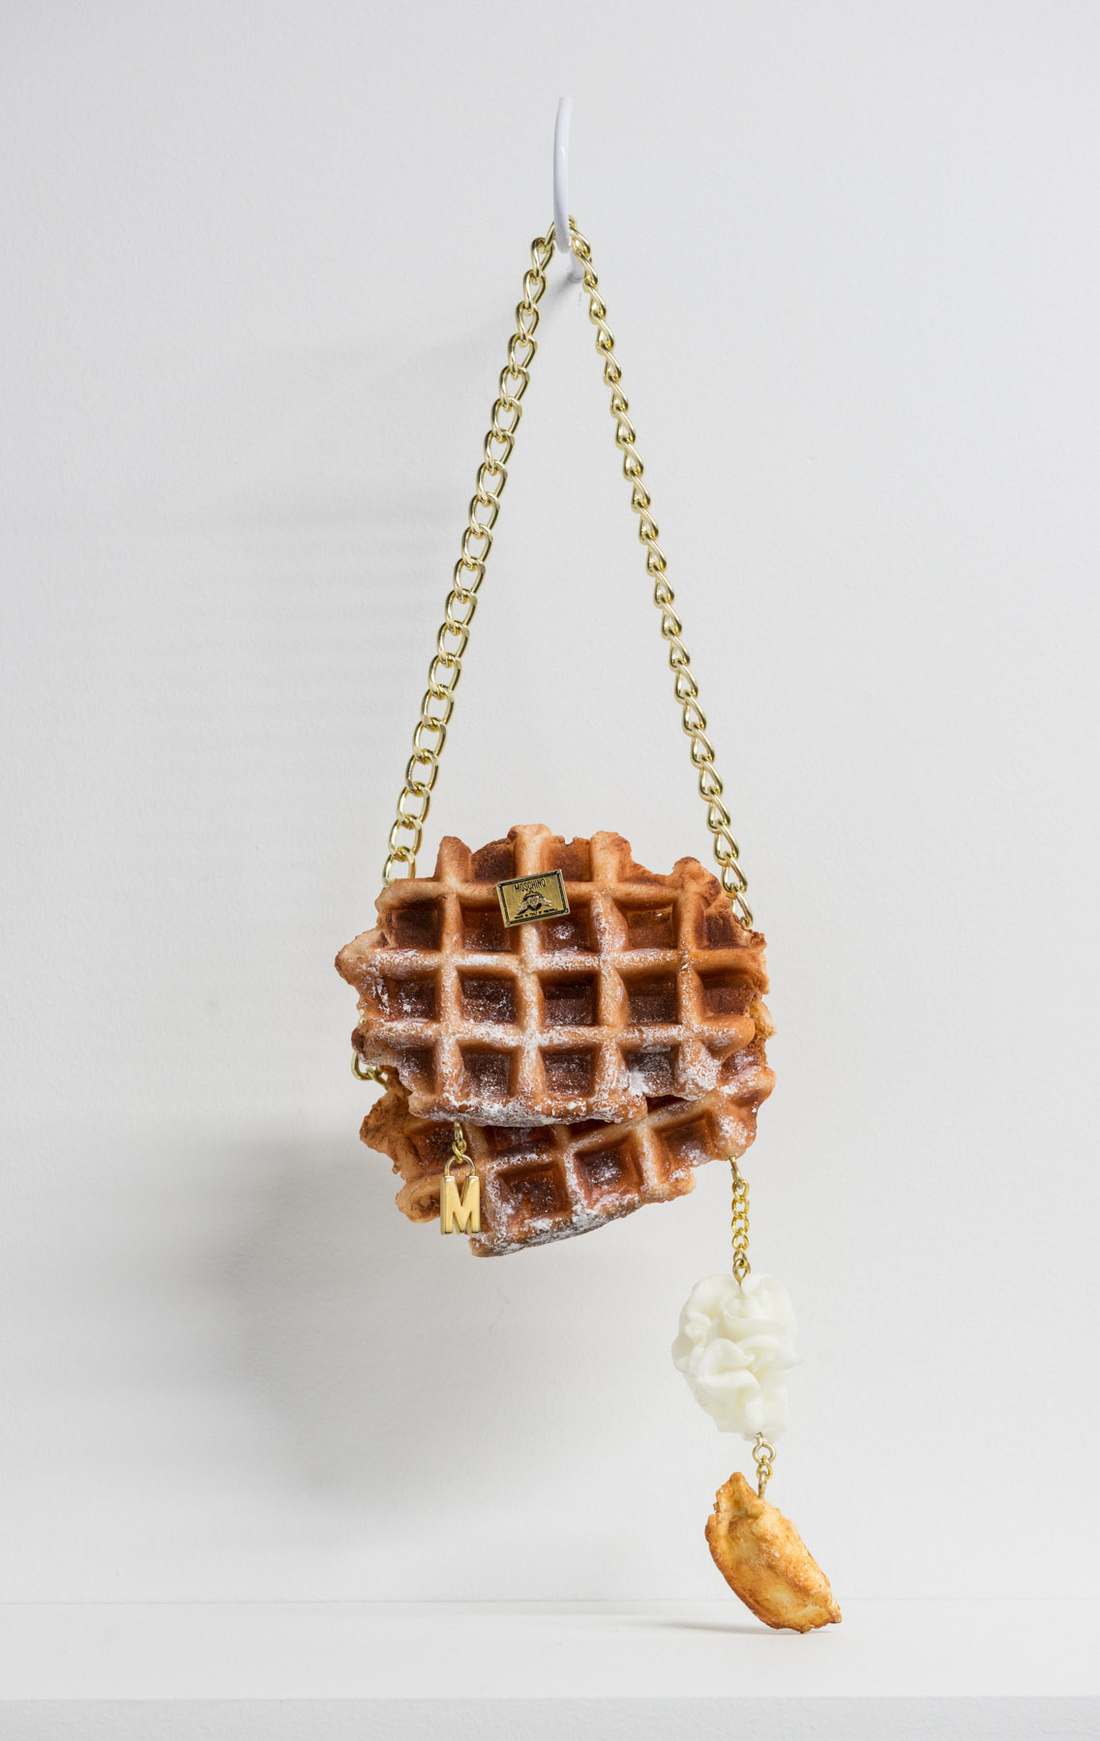 Moschino Belgian Waffles bag by Chloe Wise. Photo courtesy of the artist and Division Gallery.